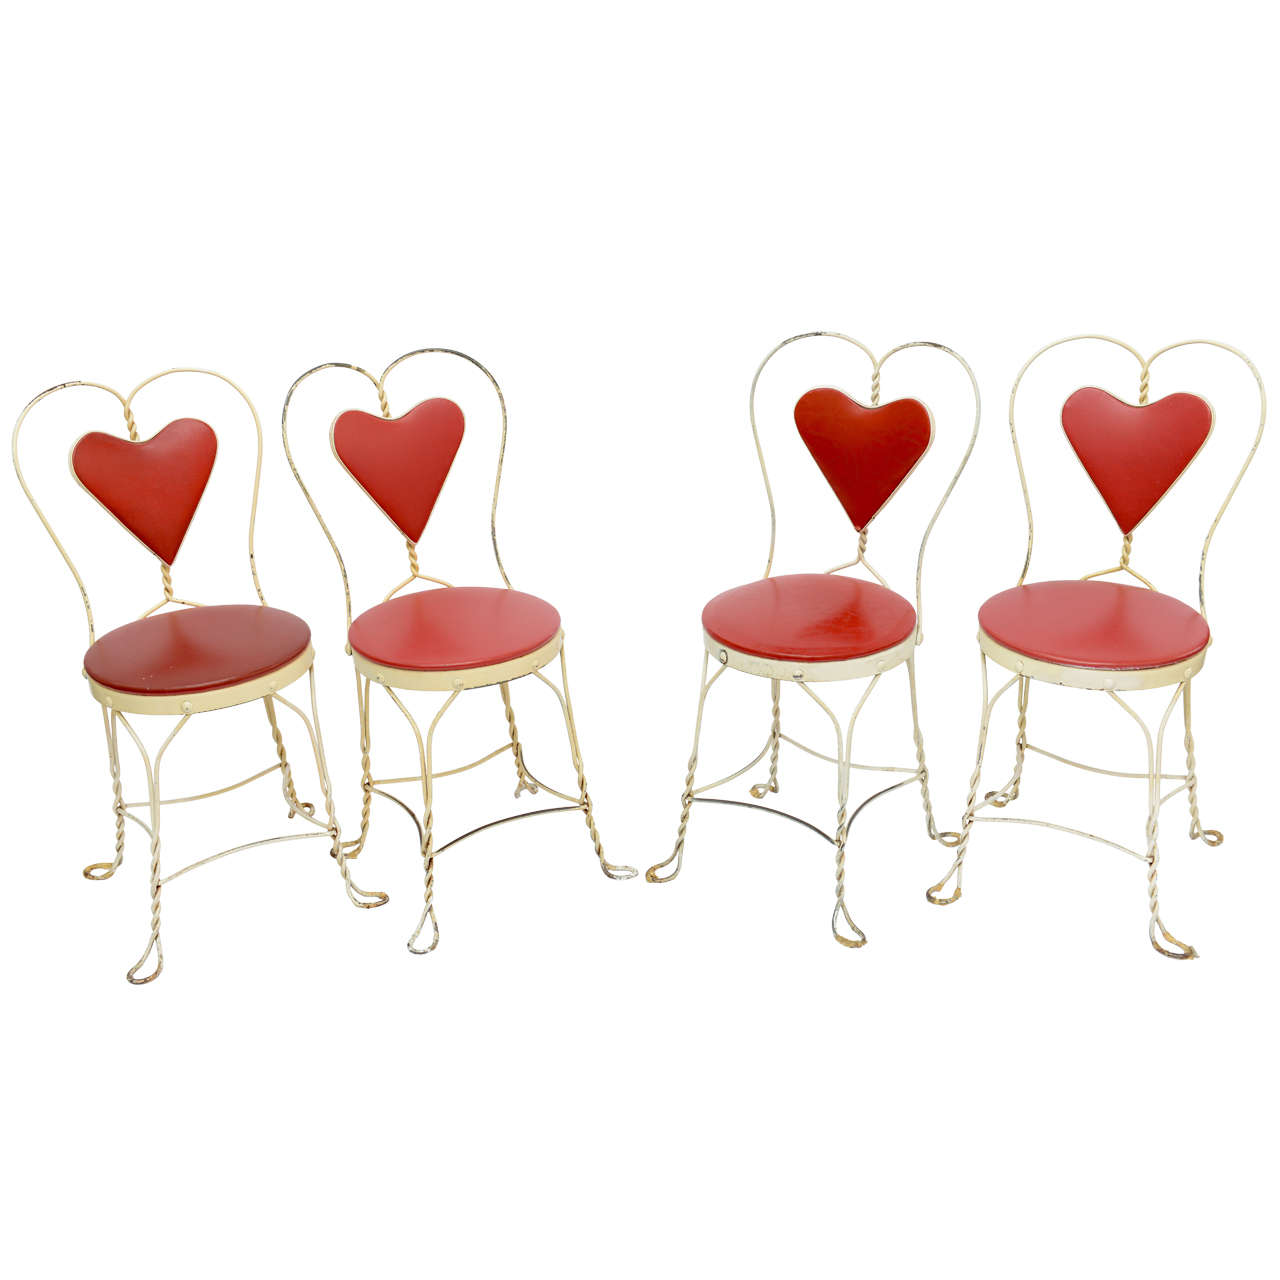 Set of 4 Antique Ice Cream Parlor Chairs 1 - Set Of 4 Antique Ice Cream Parlor Chairs At 1stdibs